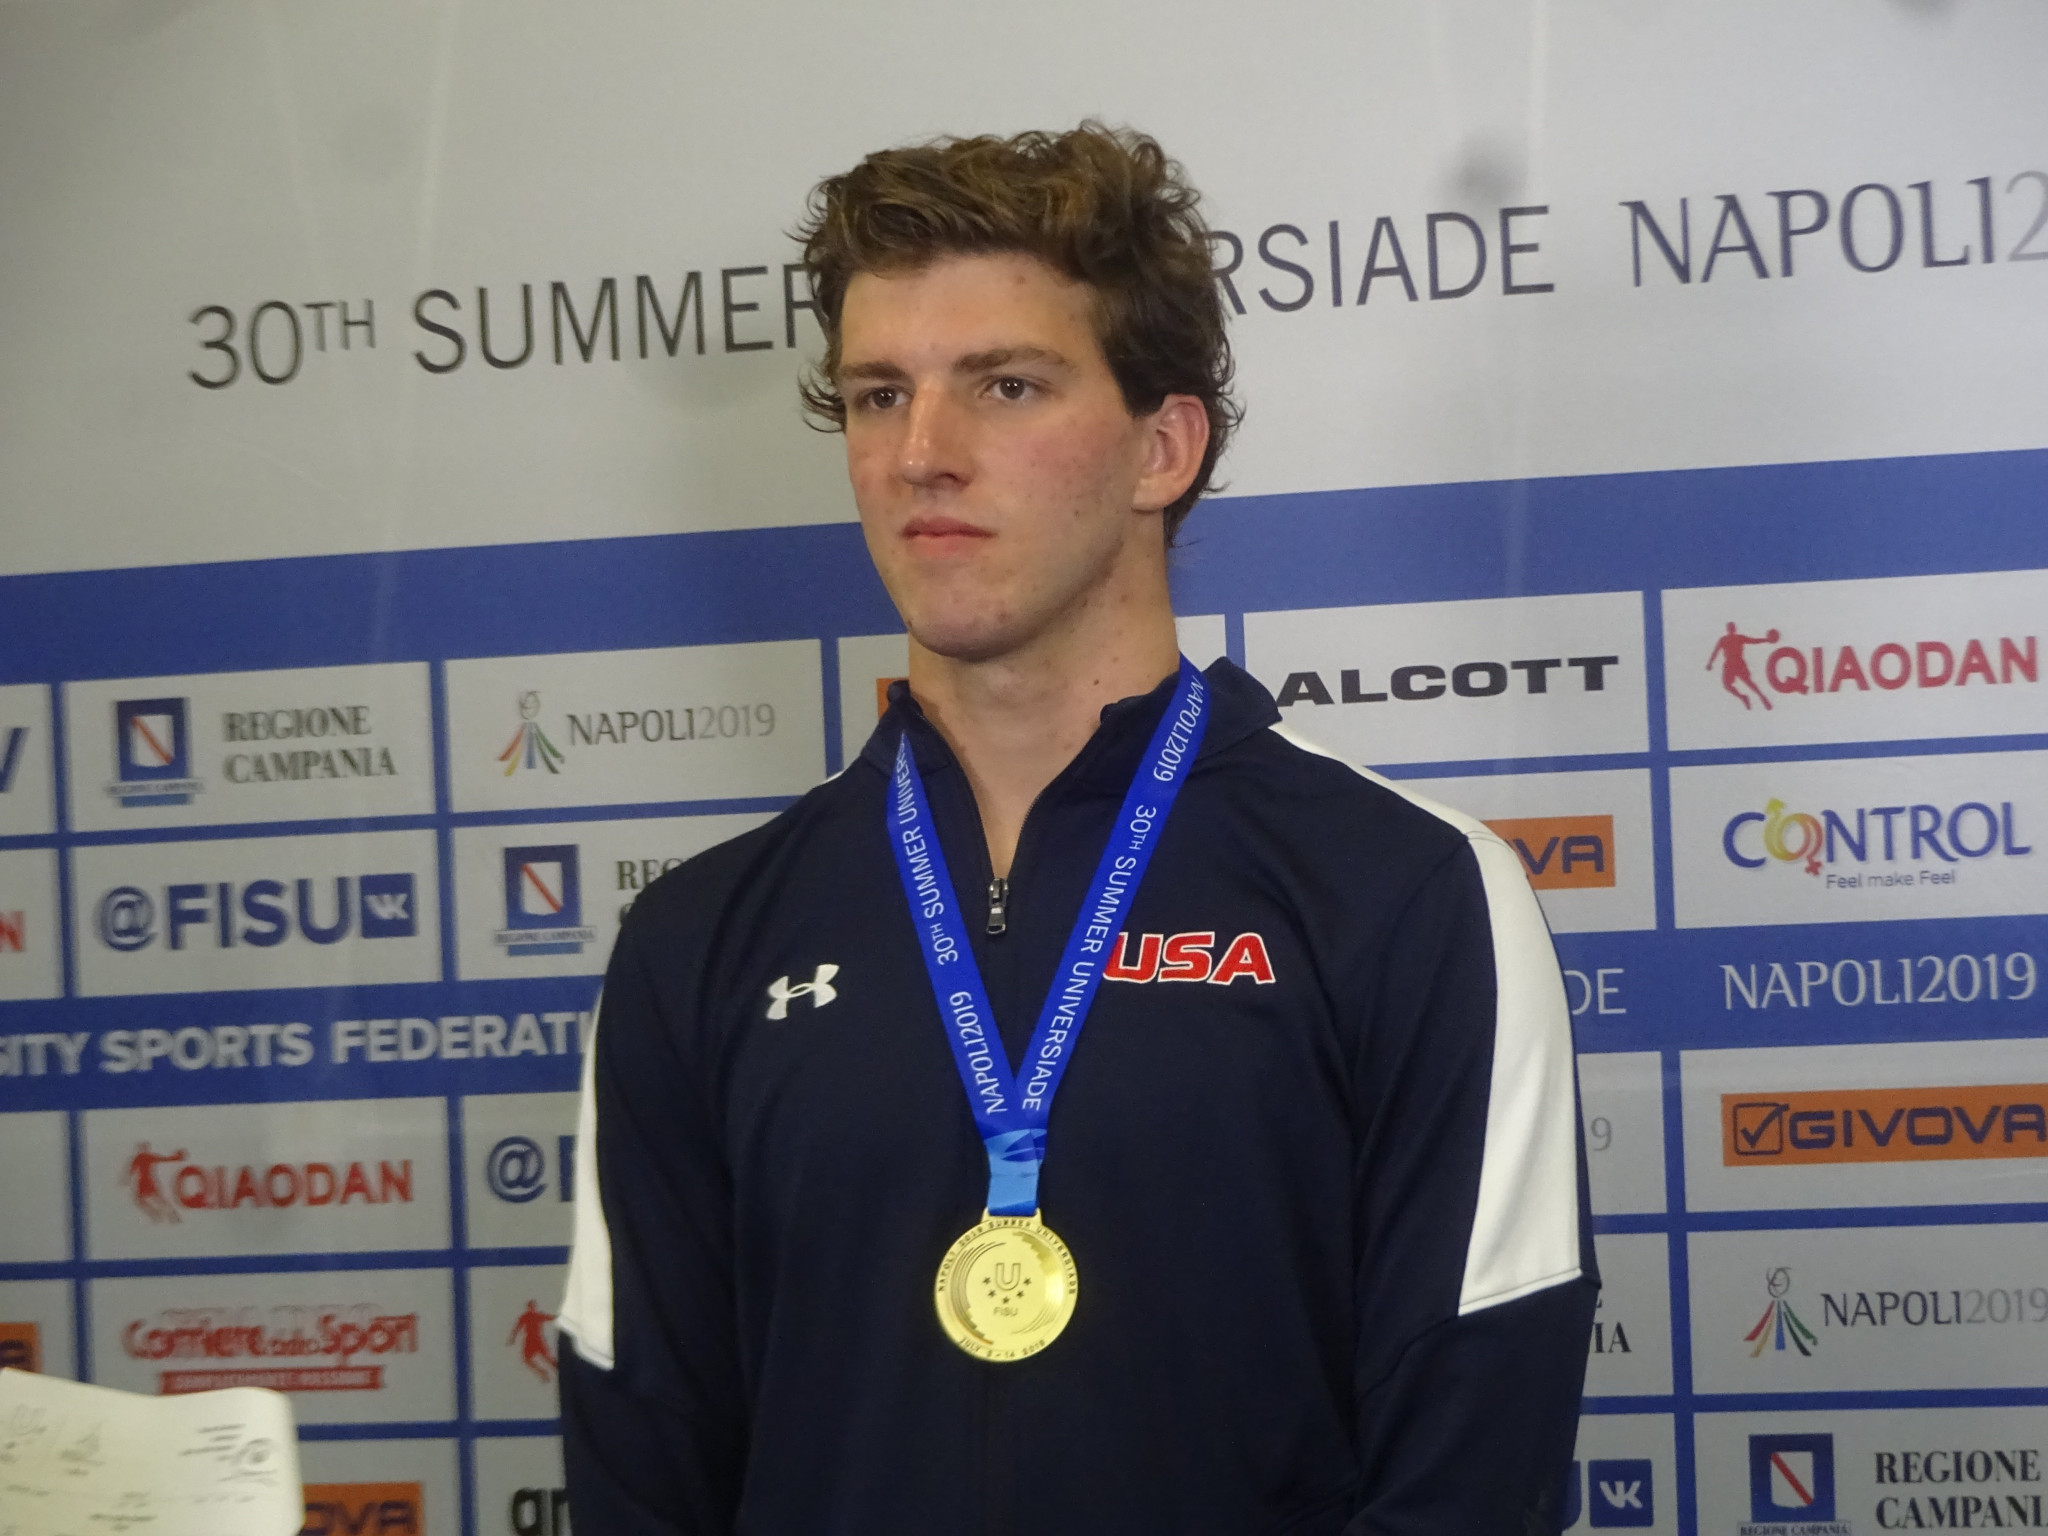 Zach Apple completed a hat-trick of gold medals as he won 100m freestyle gold at Piscina Scandone ©Philip Barker